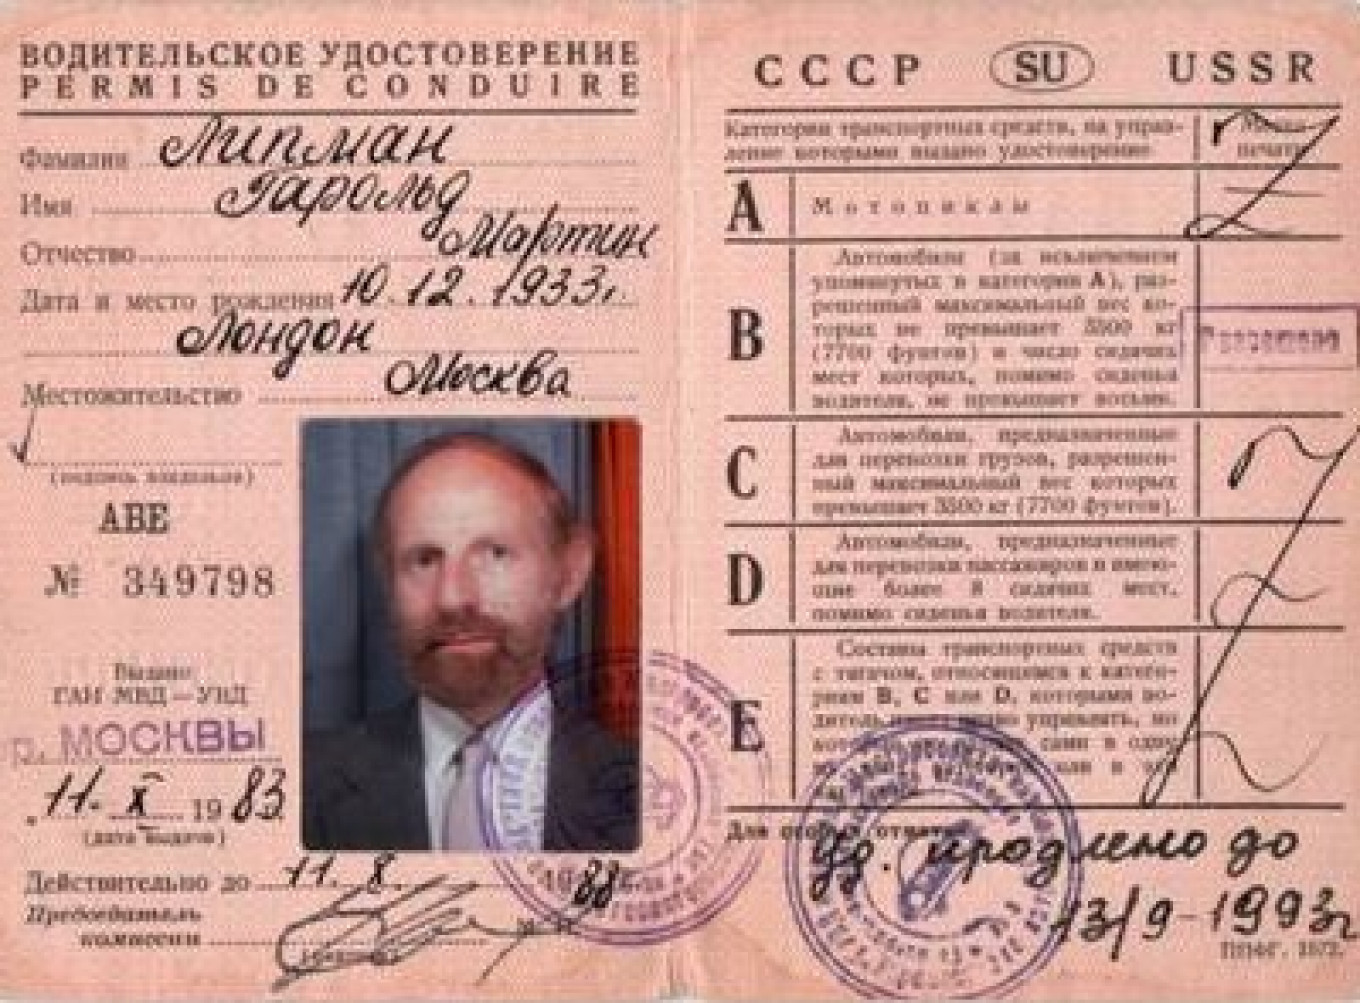 Lipman's Soviet driver's license. Courtesy of Harald Lipman